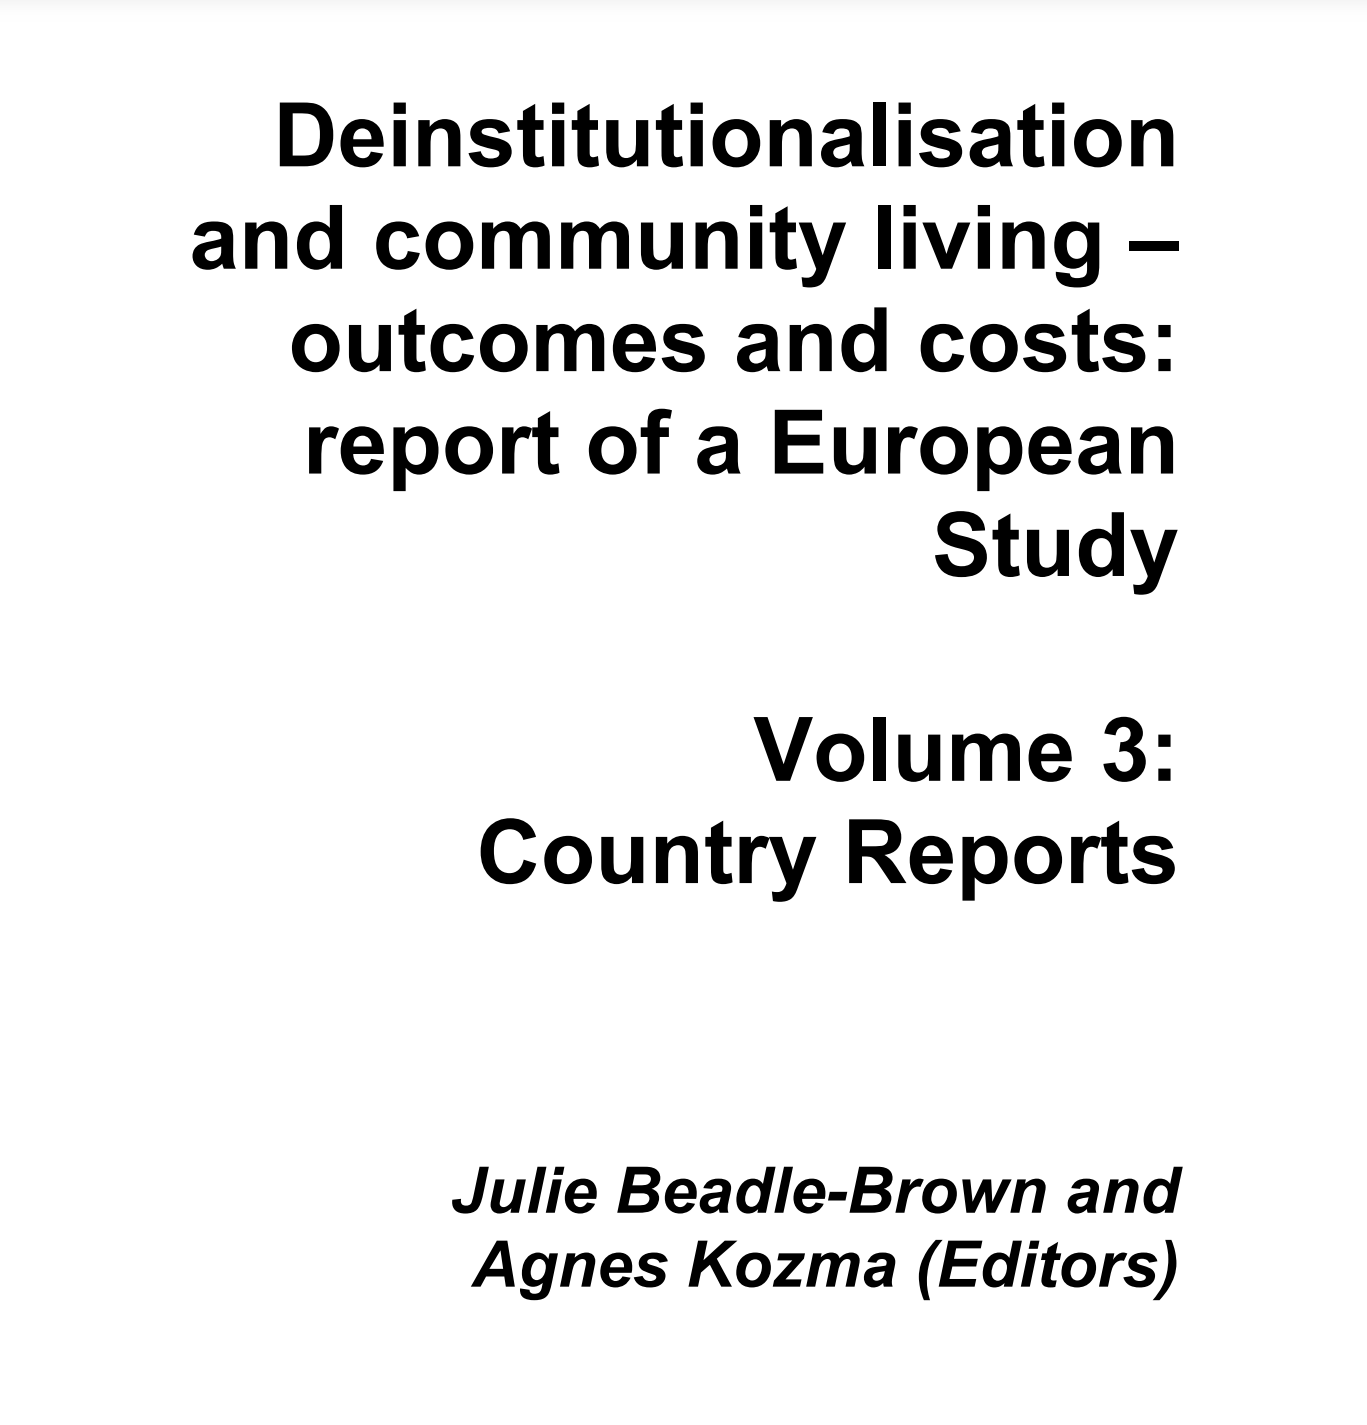 Cover art for: Deinstitutionalisation and community living outcomes and costs: Report of a European  Study